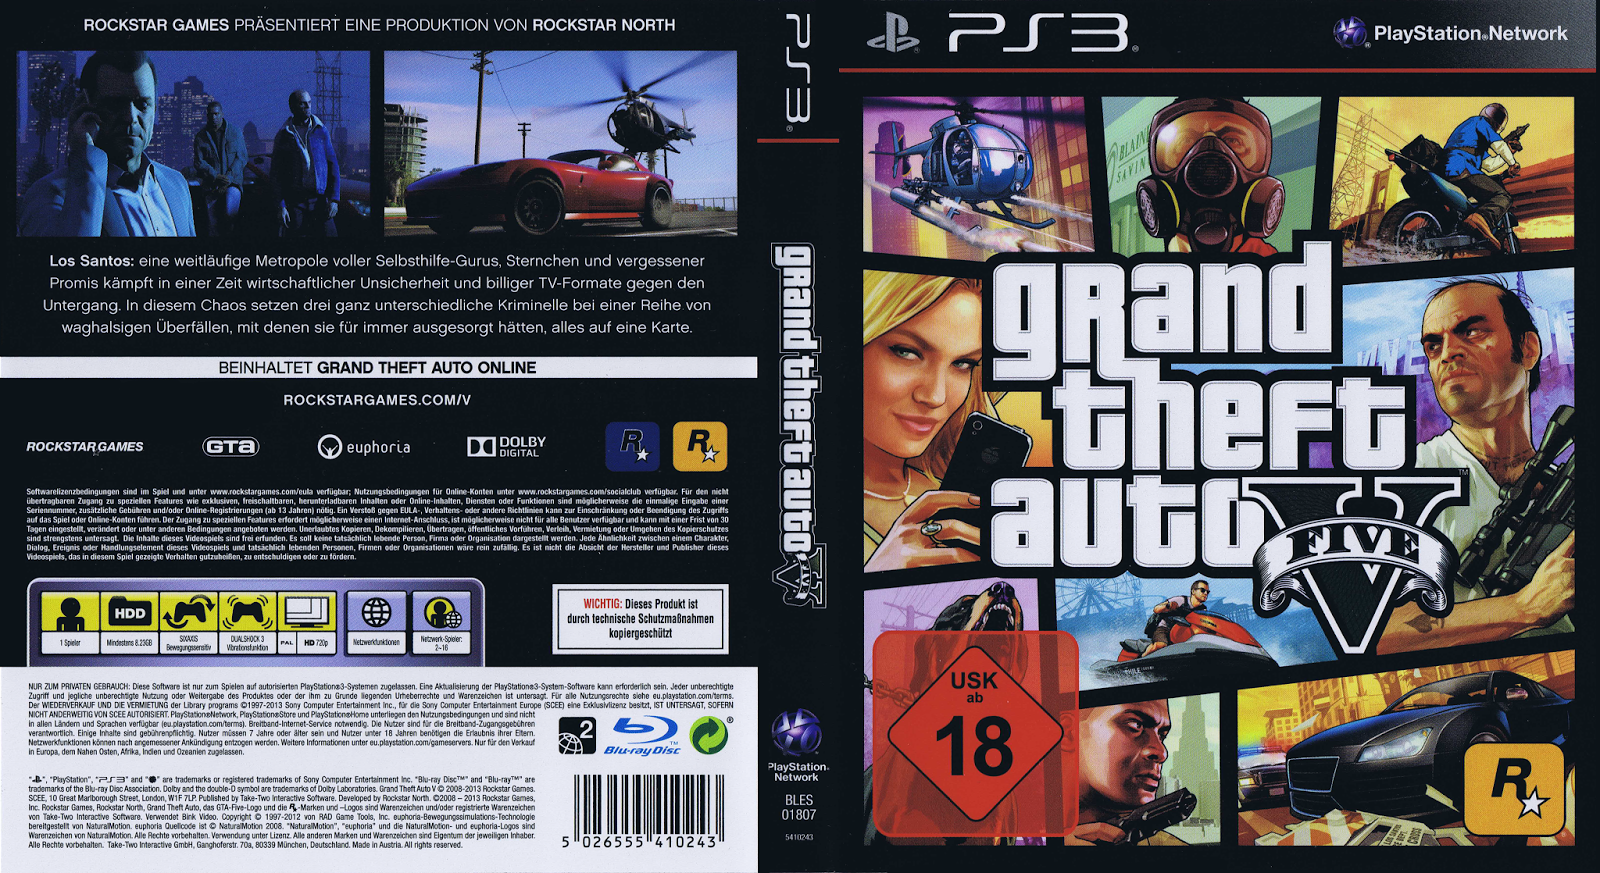 xrlGames: HD Cover Scans [PS3/Xbox360]